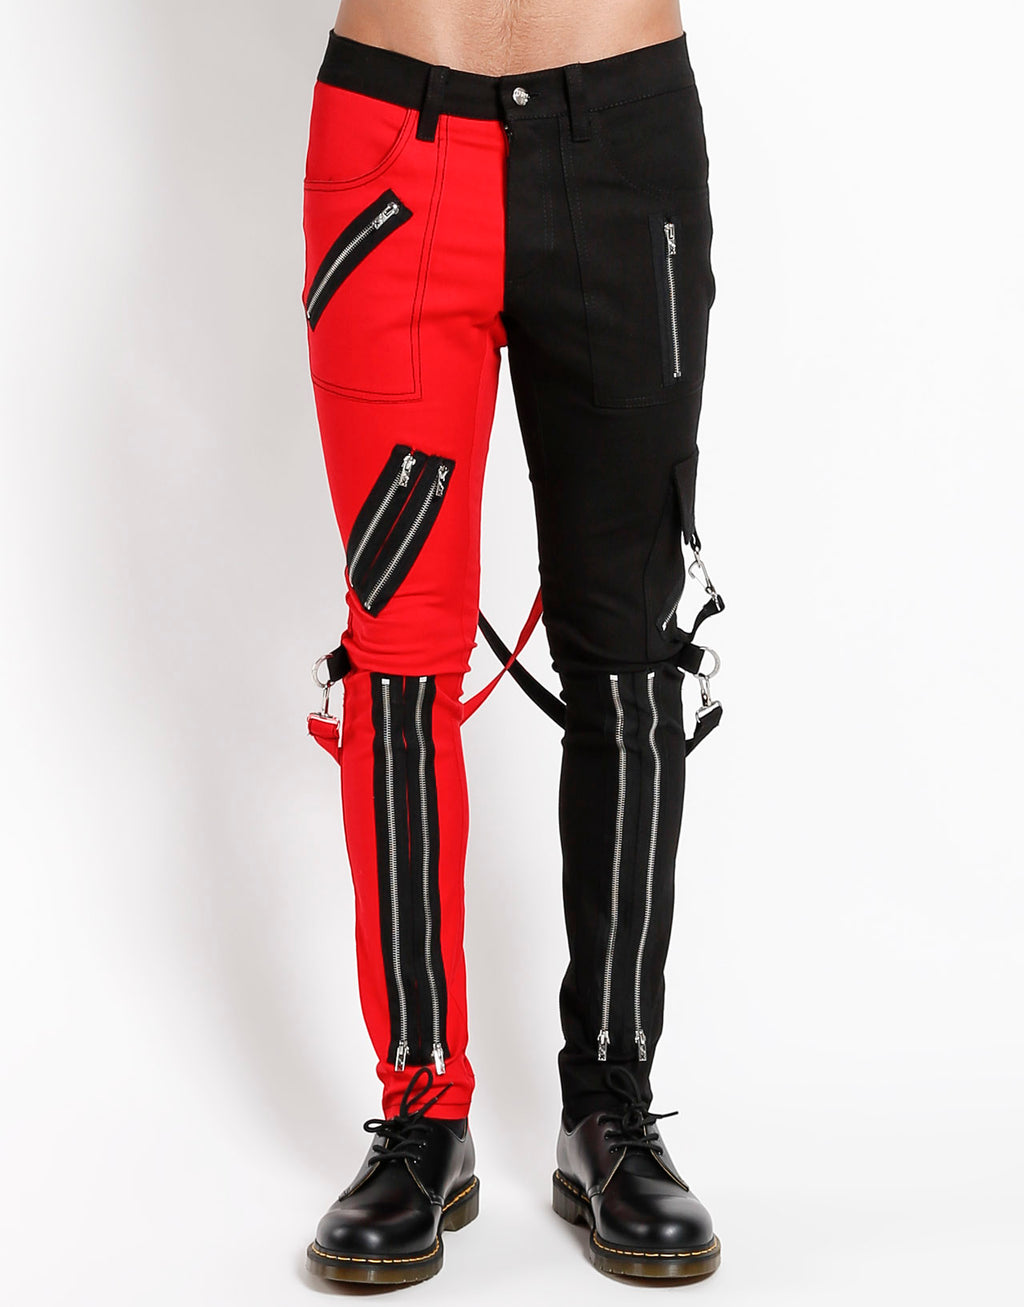 Tripp NYC Men's Split Leg Bondage Pants - Black/Red